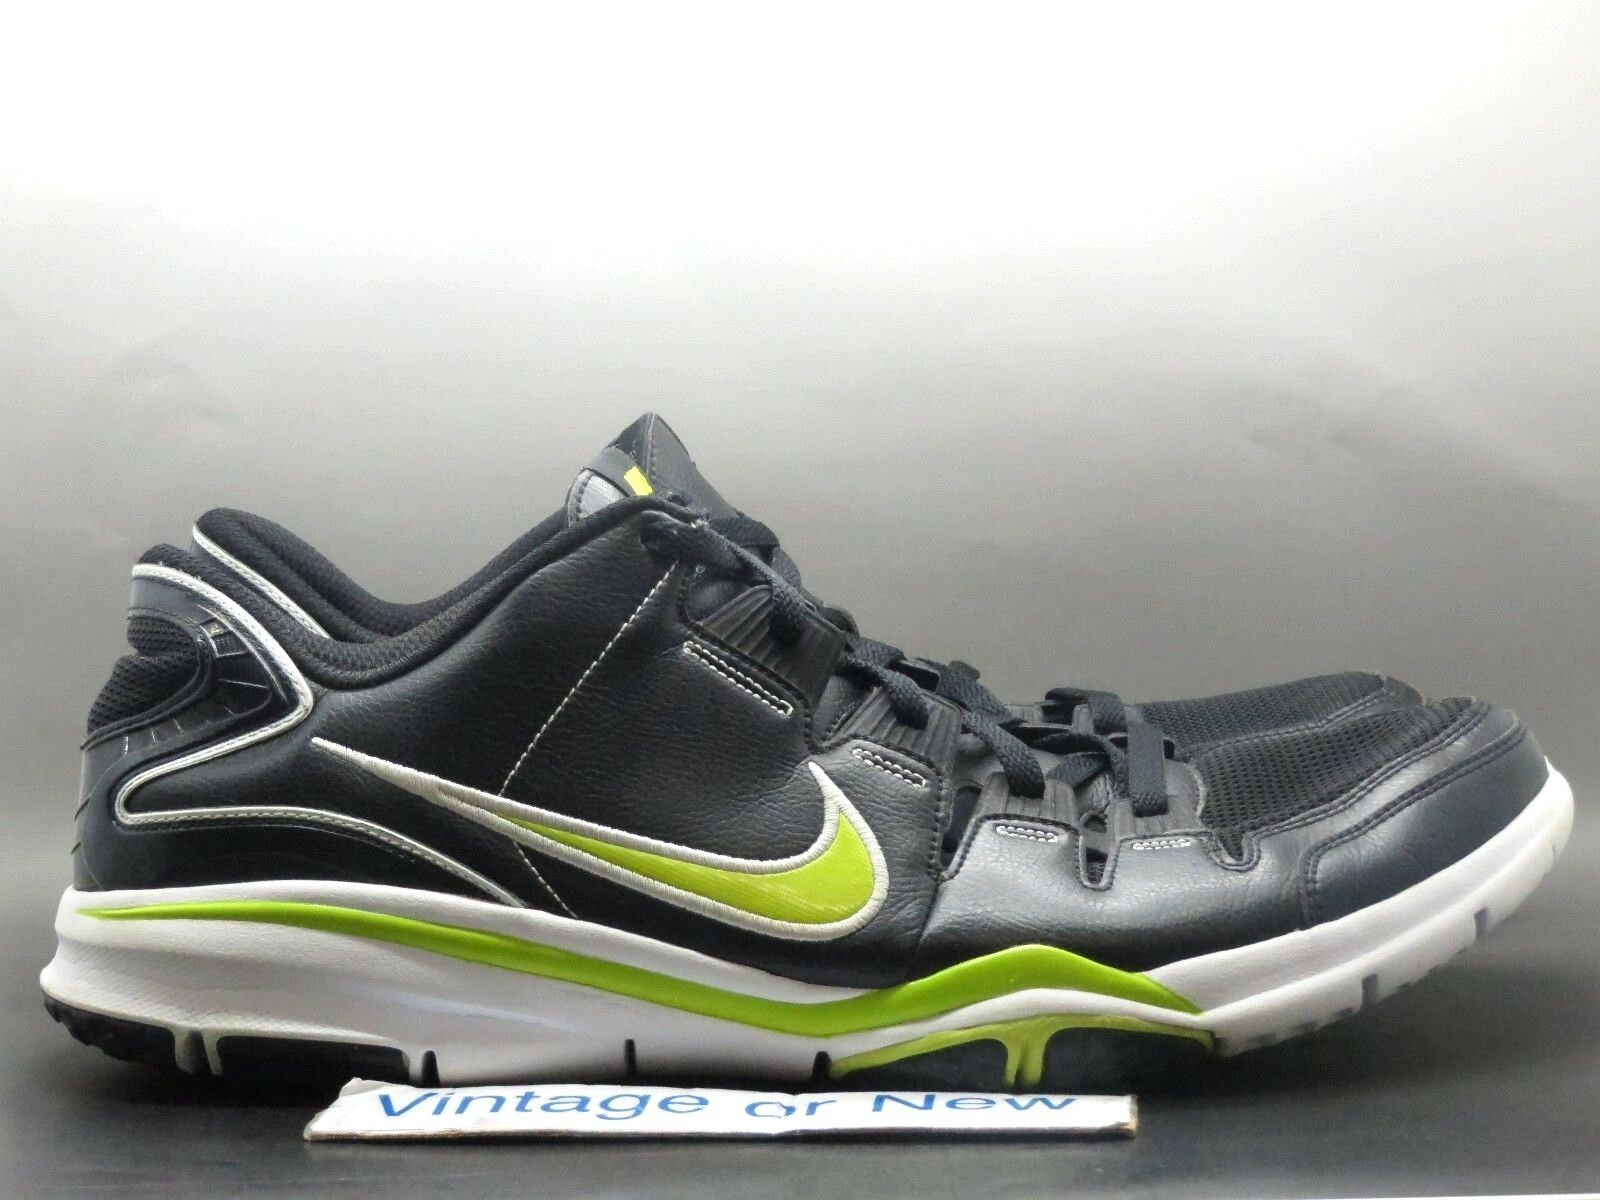 New shoes for men and women, limited time discount Men's Nike Free Sparq '09 Black Volt White Training Shoes 354787-031 Price reduction